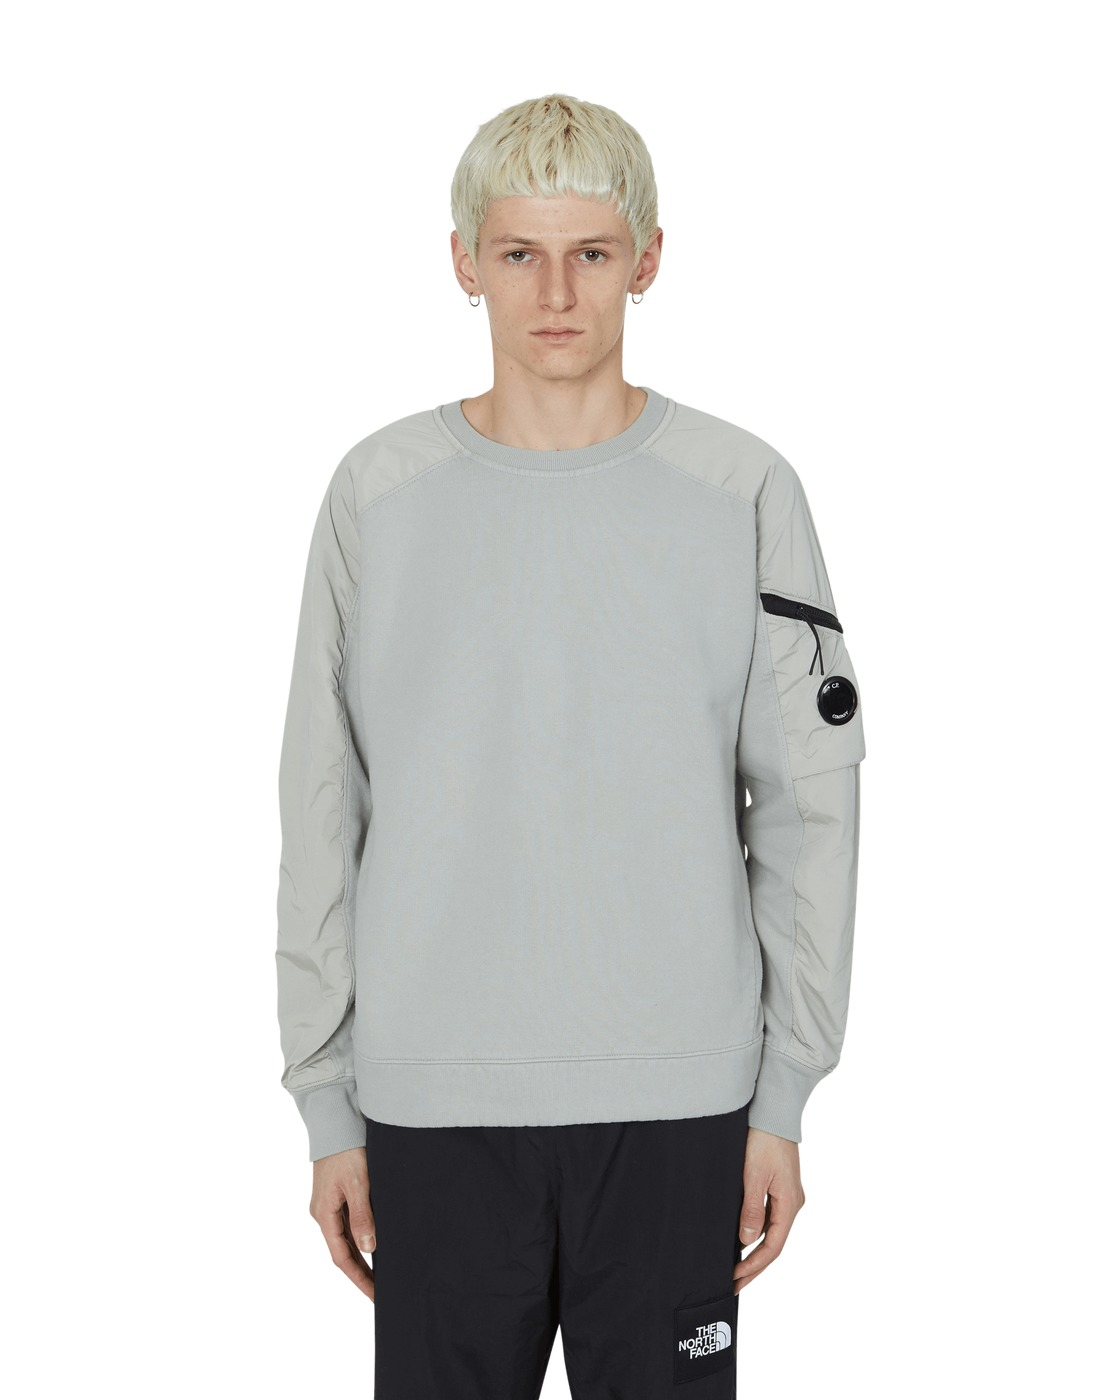 C.P. Company Slam Jam Exclusive Dyed Crewneck Sweatshirt Grey